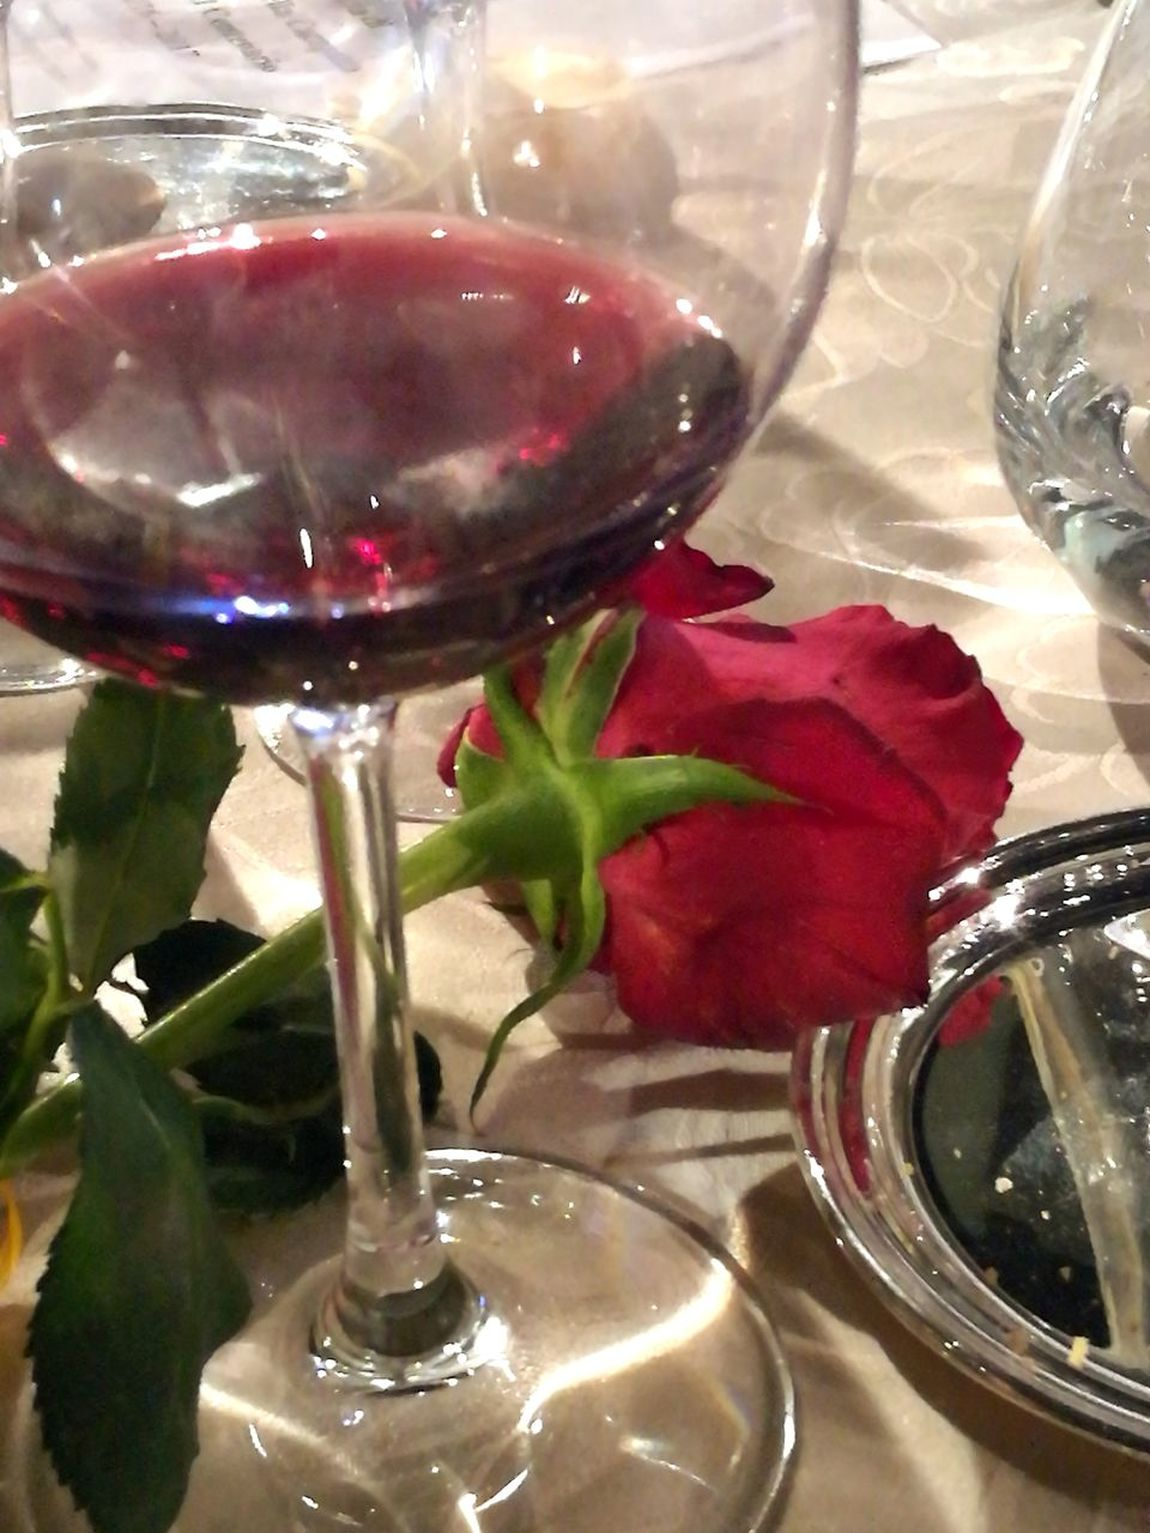 Wineglass Drinking Glass Wine Drink Food And Drink Red Wine Table Red Freshness Summer Close-up Rose🌹 A Night Out Dinner Table Wine and roses Wine Not